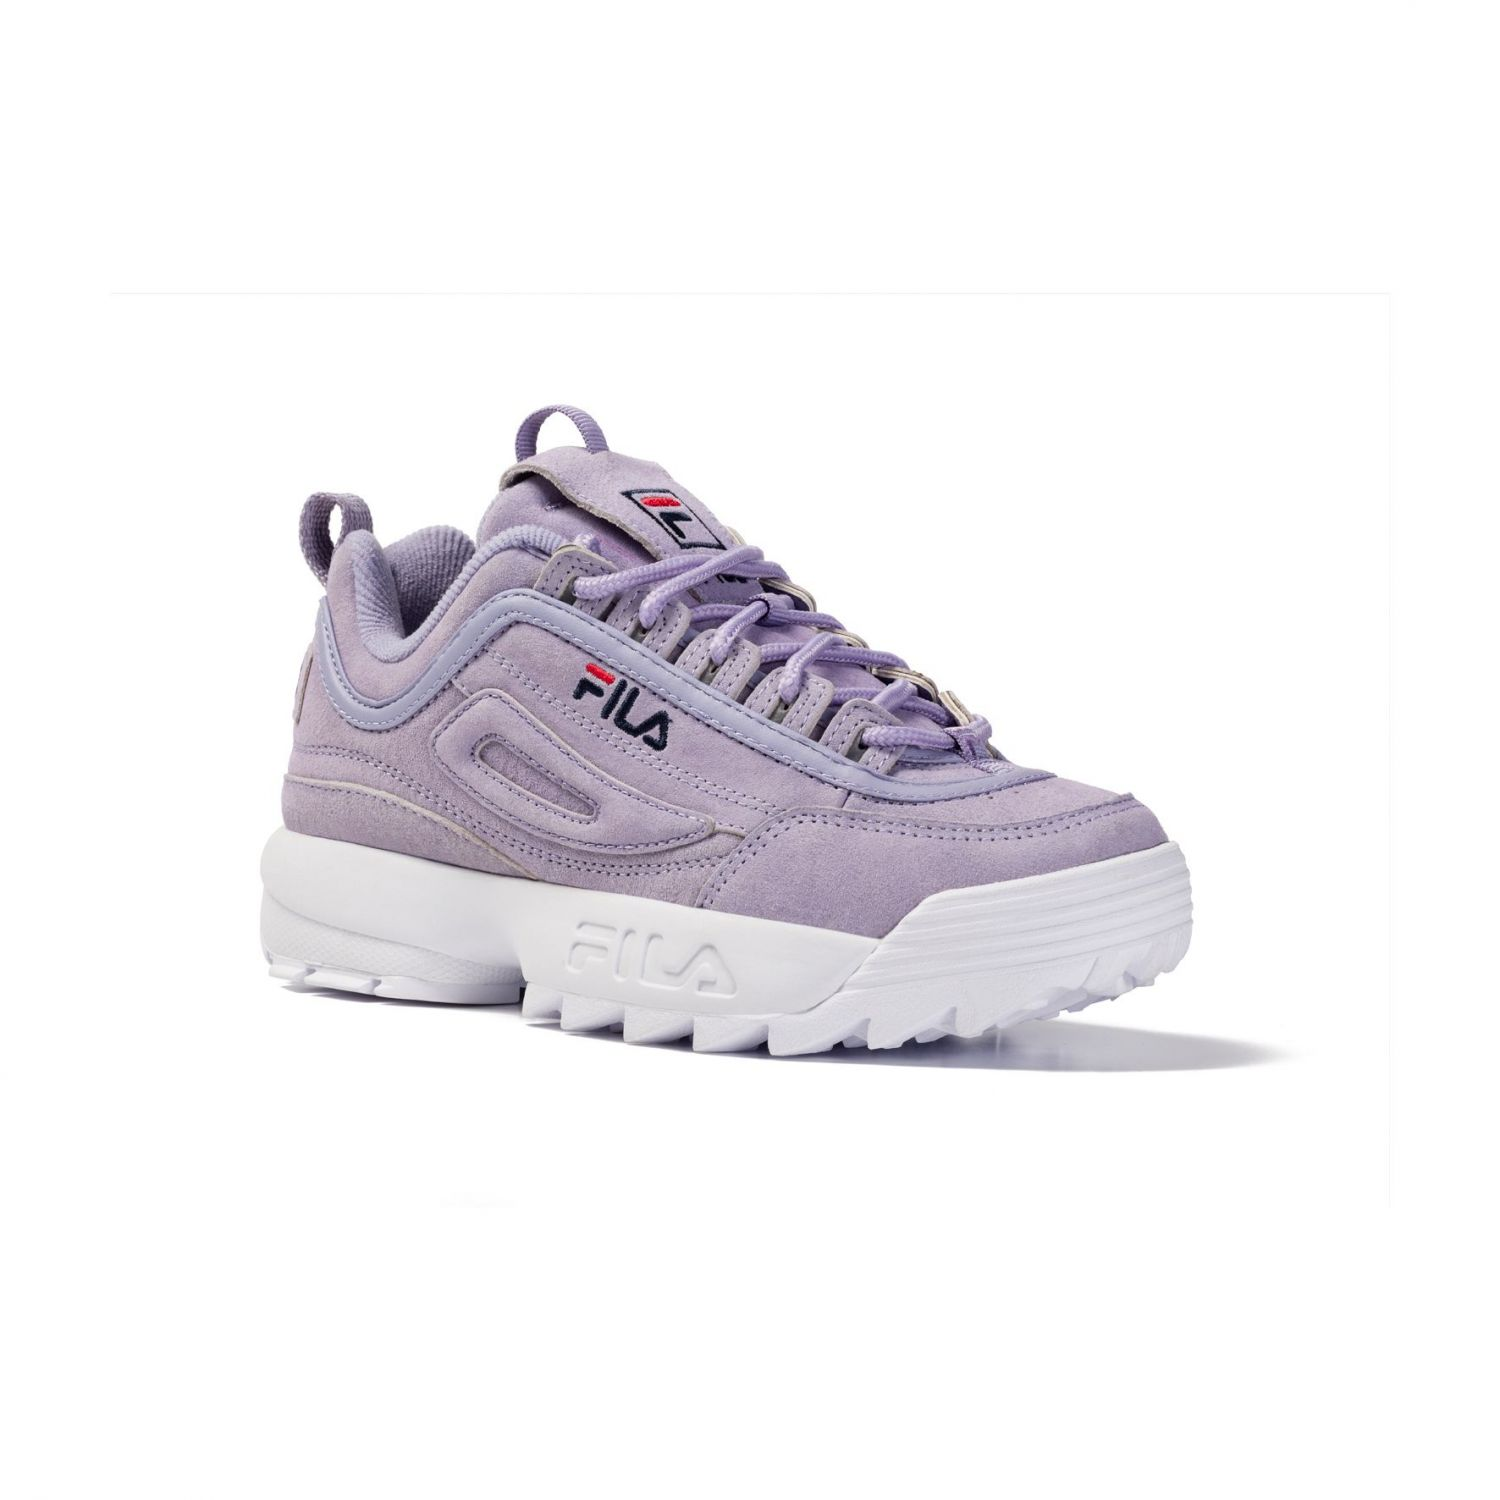 c70aa8200 Fila Disruptor S Low Wmn sweet lavender - lavender | FILA Official